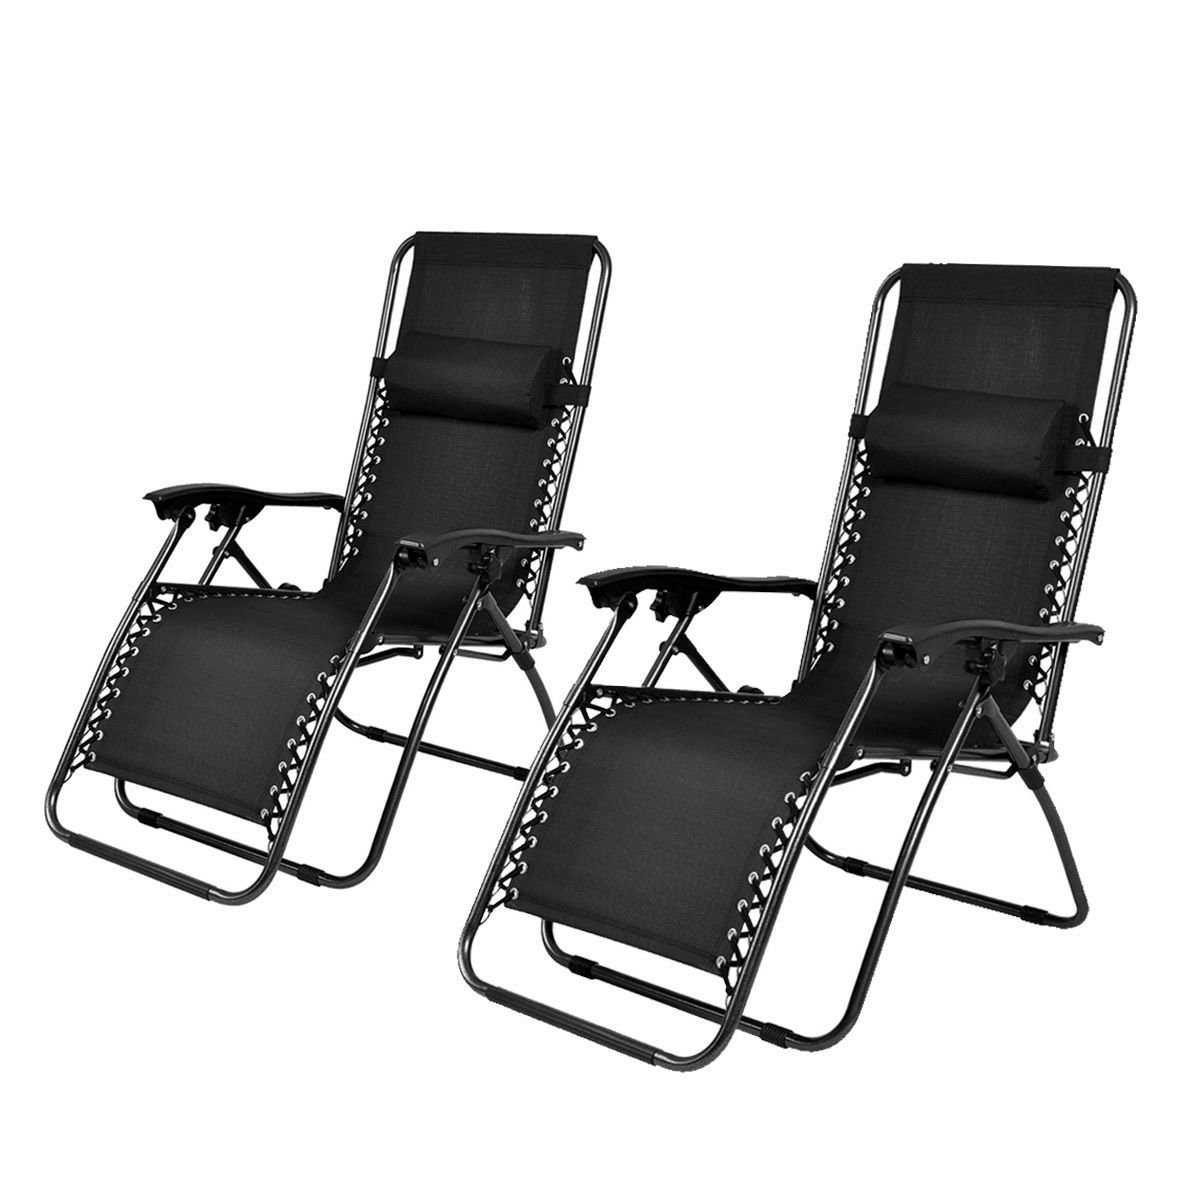 Amazon.com  Giantex 2pc Zero Gravity Chairs Lounge Patio Folding Recliner Outdoor Yard Beach Black  Garden u0026 Outdoor  sc 1 st  Amazon.com & Amazon.com : Giantex 2pc Zero Gravity Chairs Lounge Patio Folding ... islam-shia.org